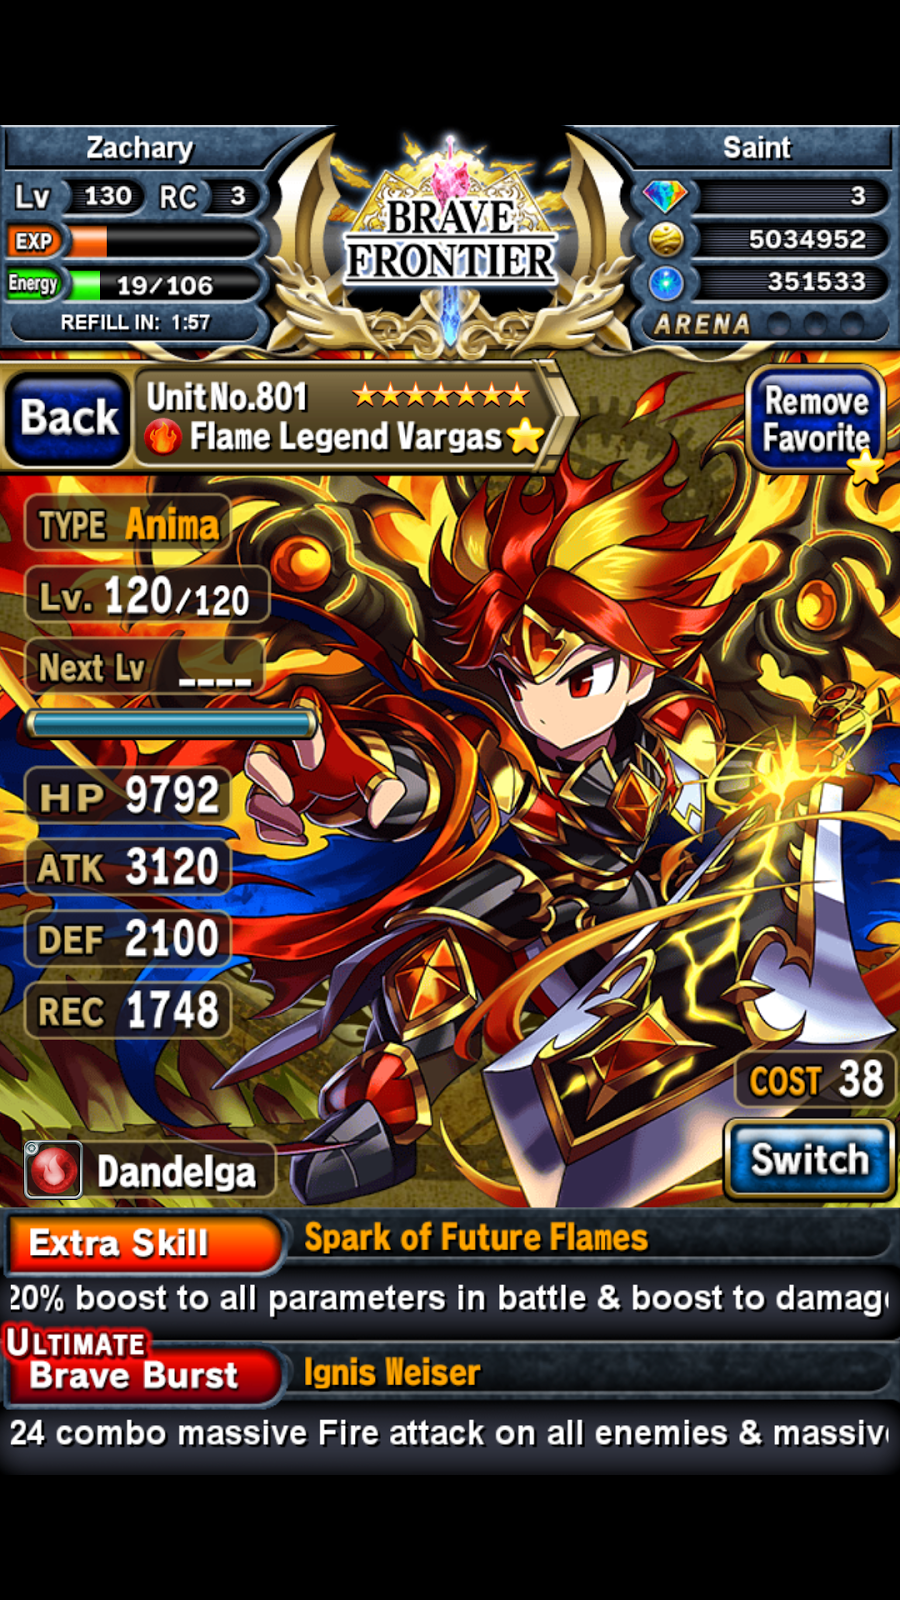 Zachary Snow | Gaming Guides and More!: Brave Frontier ... | 900 x 1600 png 1778kB